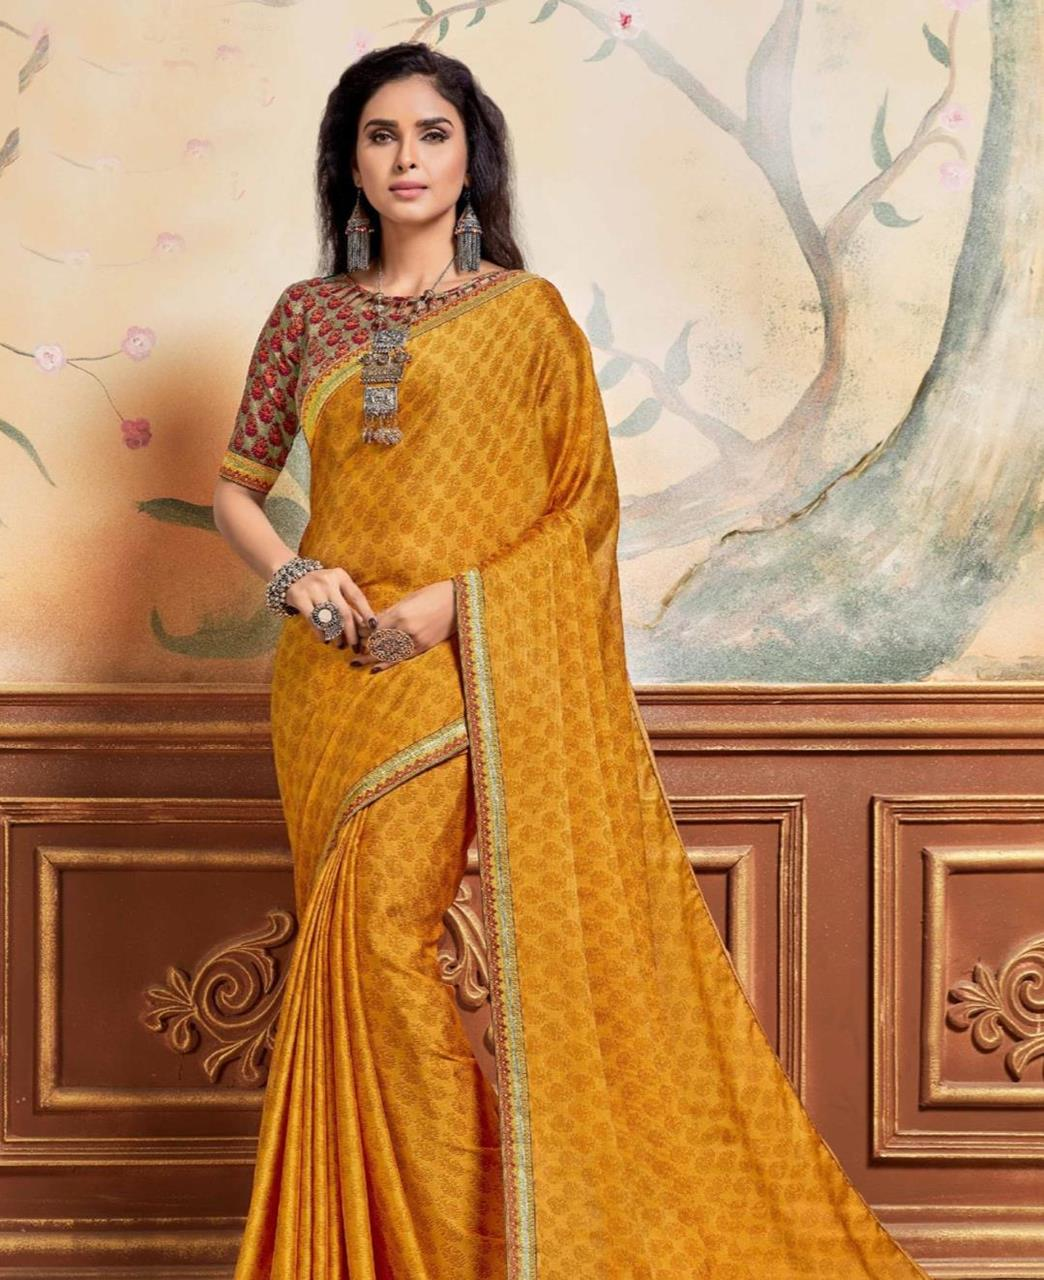 Lace Chiffon Saree in Yellow